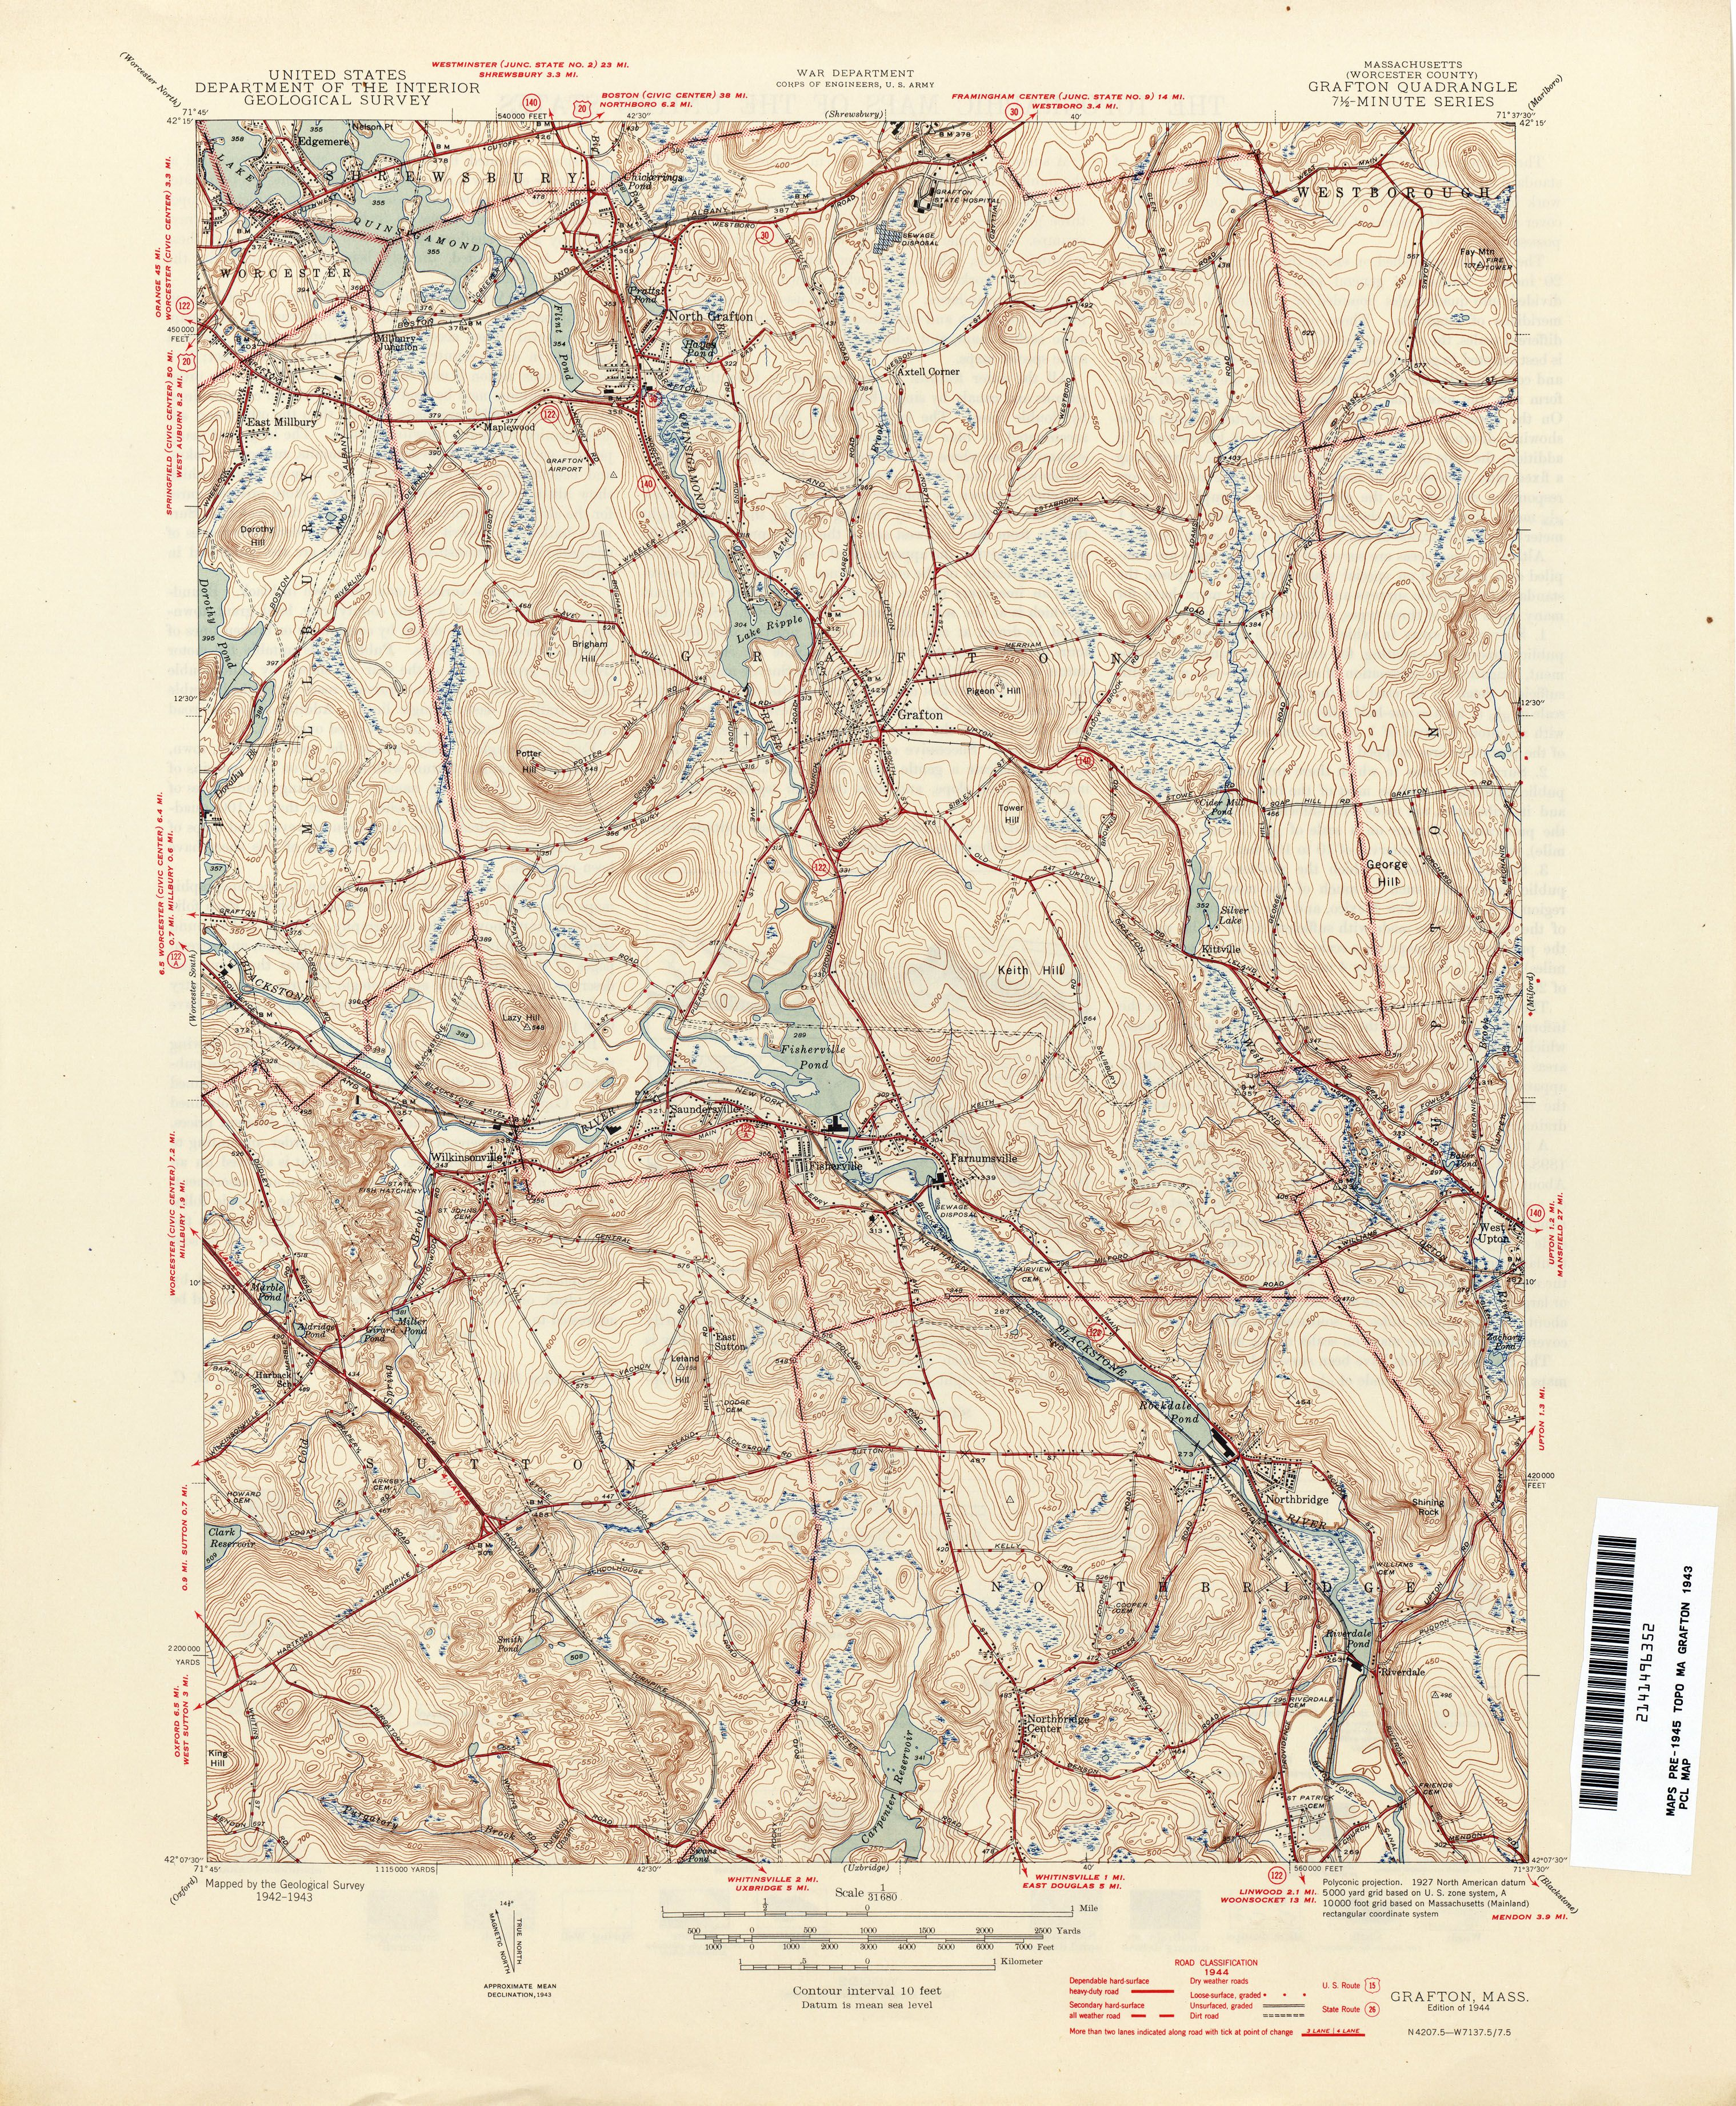 1944 Topographical Map Of Grafton Ma Mapped By Us Geological Survey - Massachusetts-in-us-map